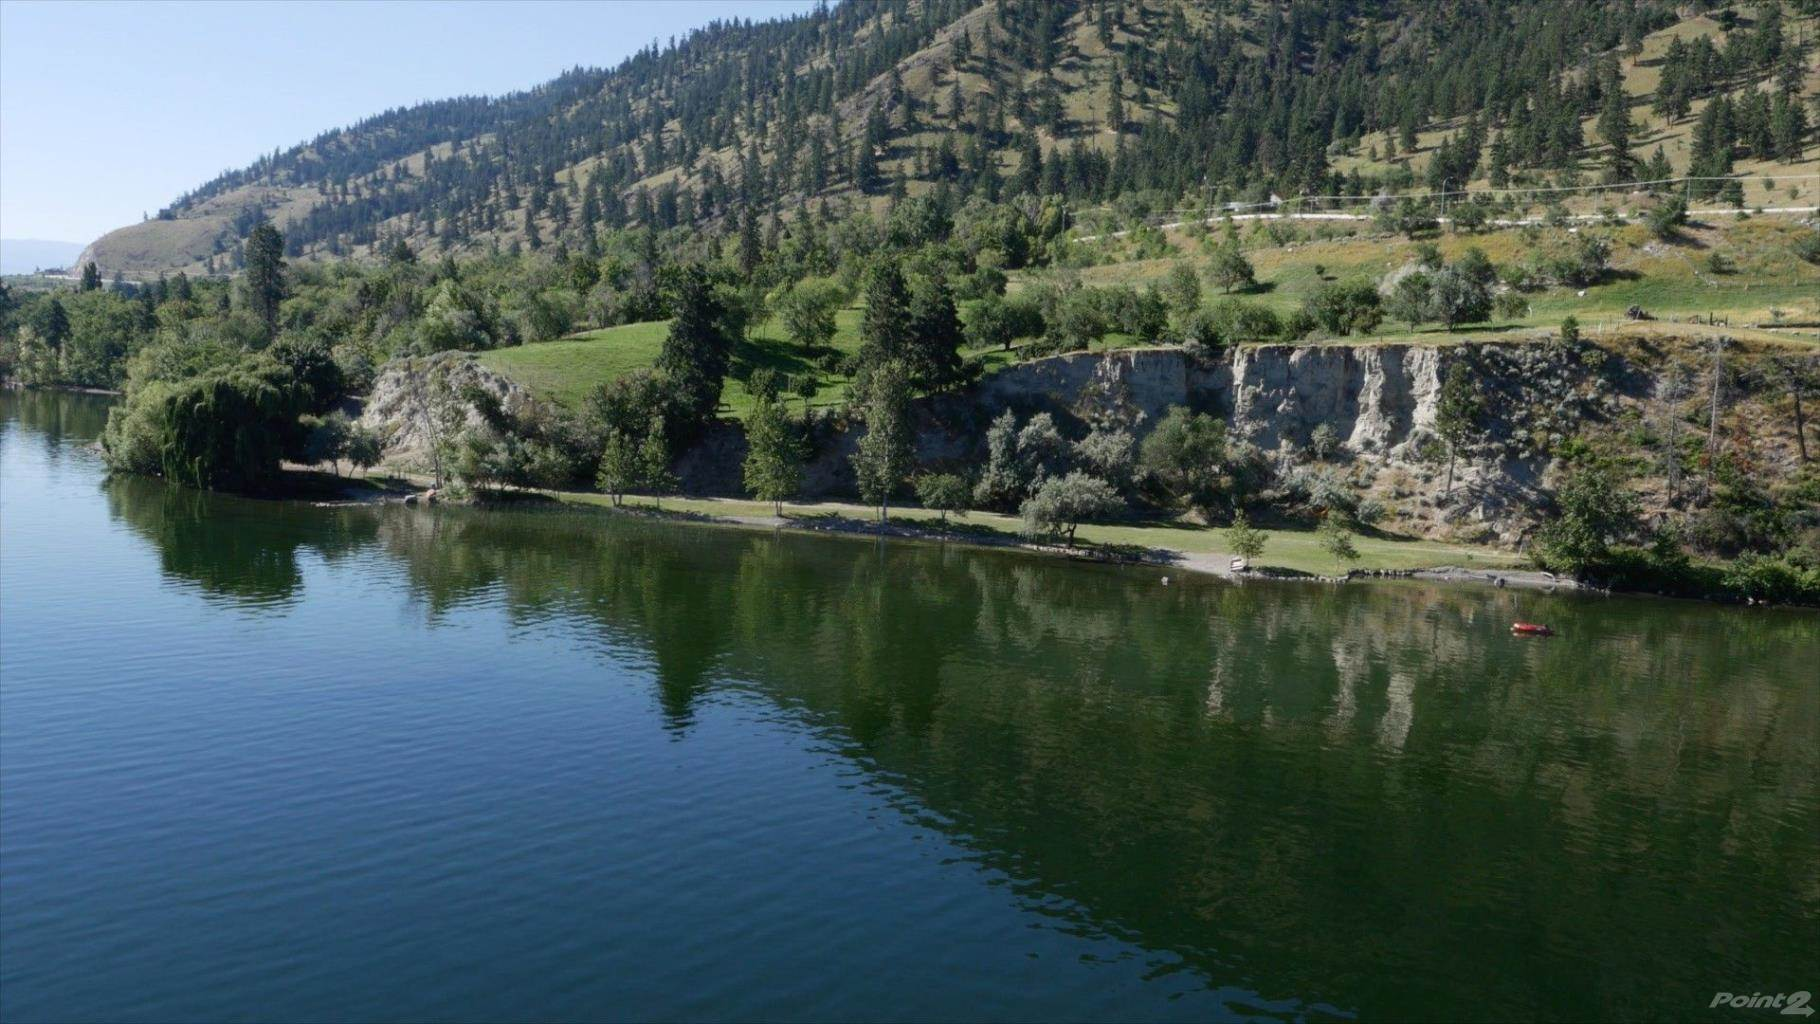 Residential For Sale in 625+619 HWY 97 N, Summerland, British Columbia V0H1Z6, Summerland, British Columbia ,V0H1Z6  , Canada